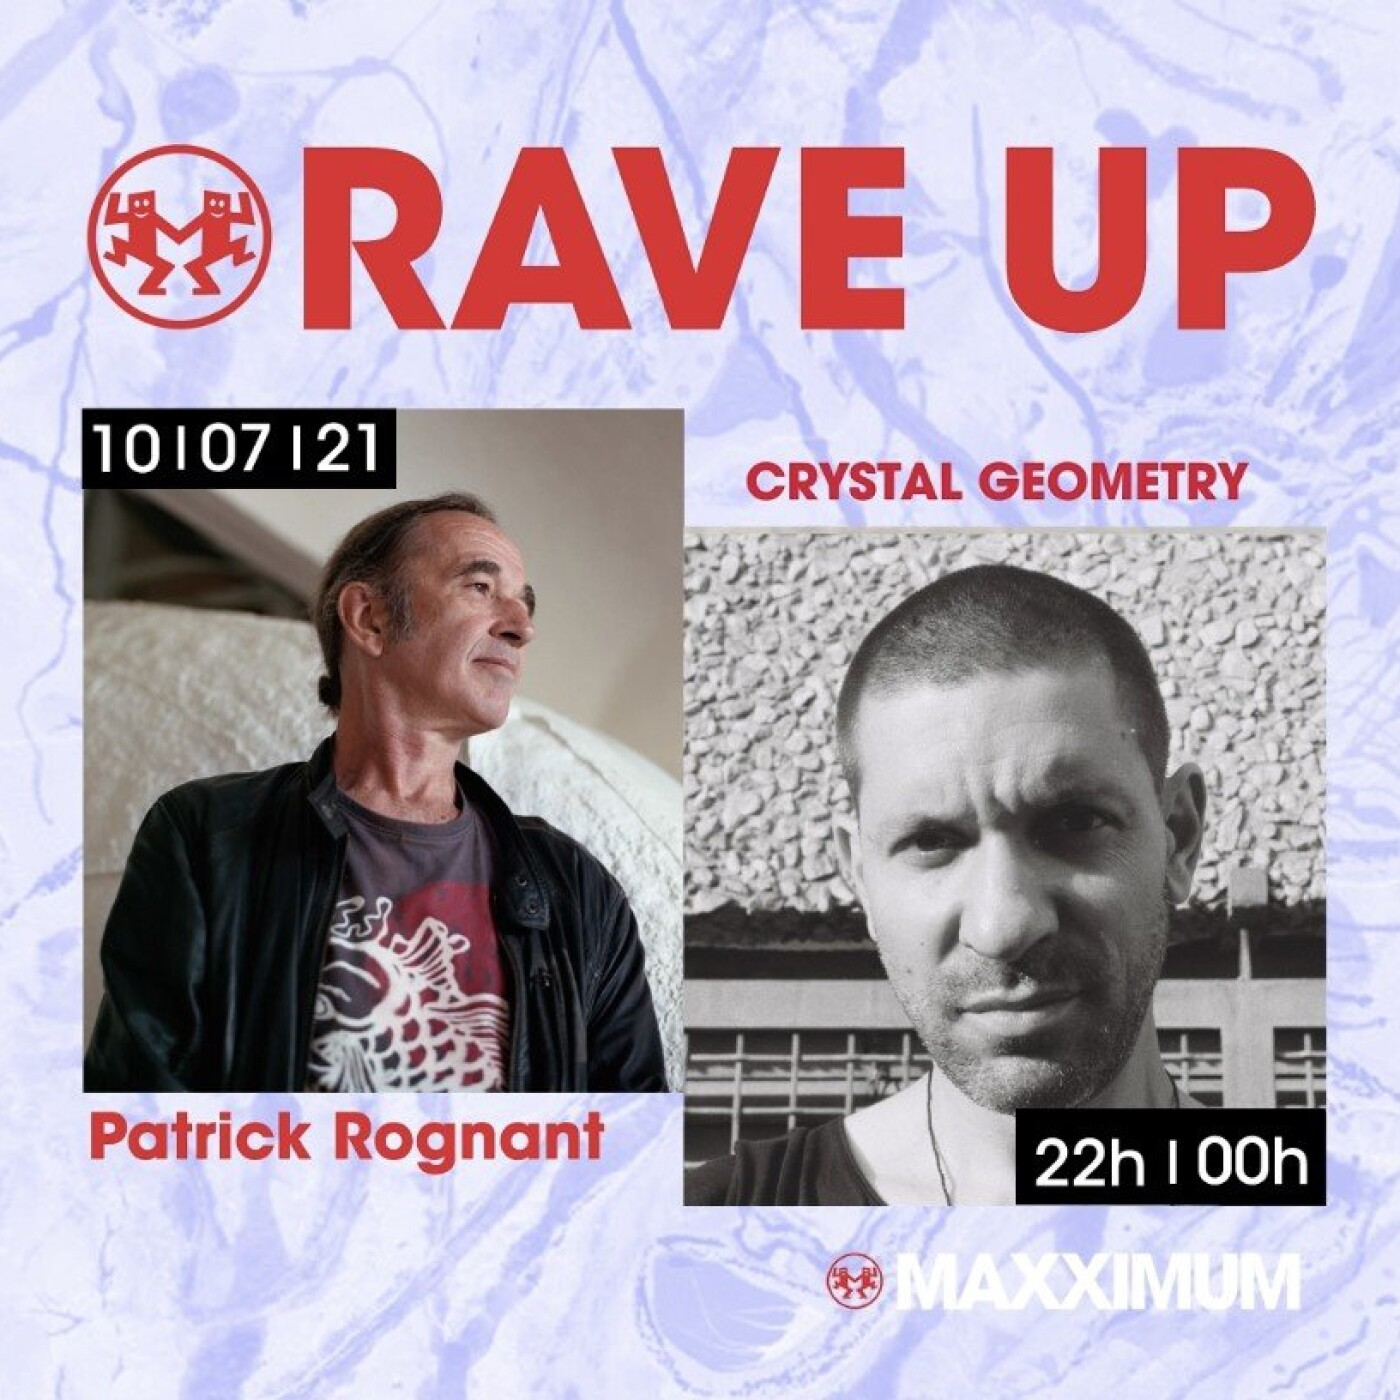 RAVE UP : CRYSTAL GEOMETRY